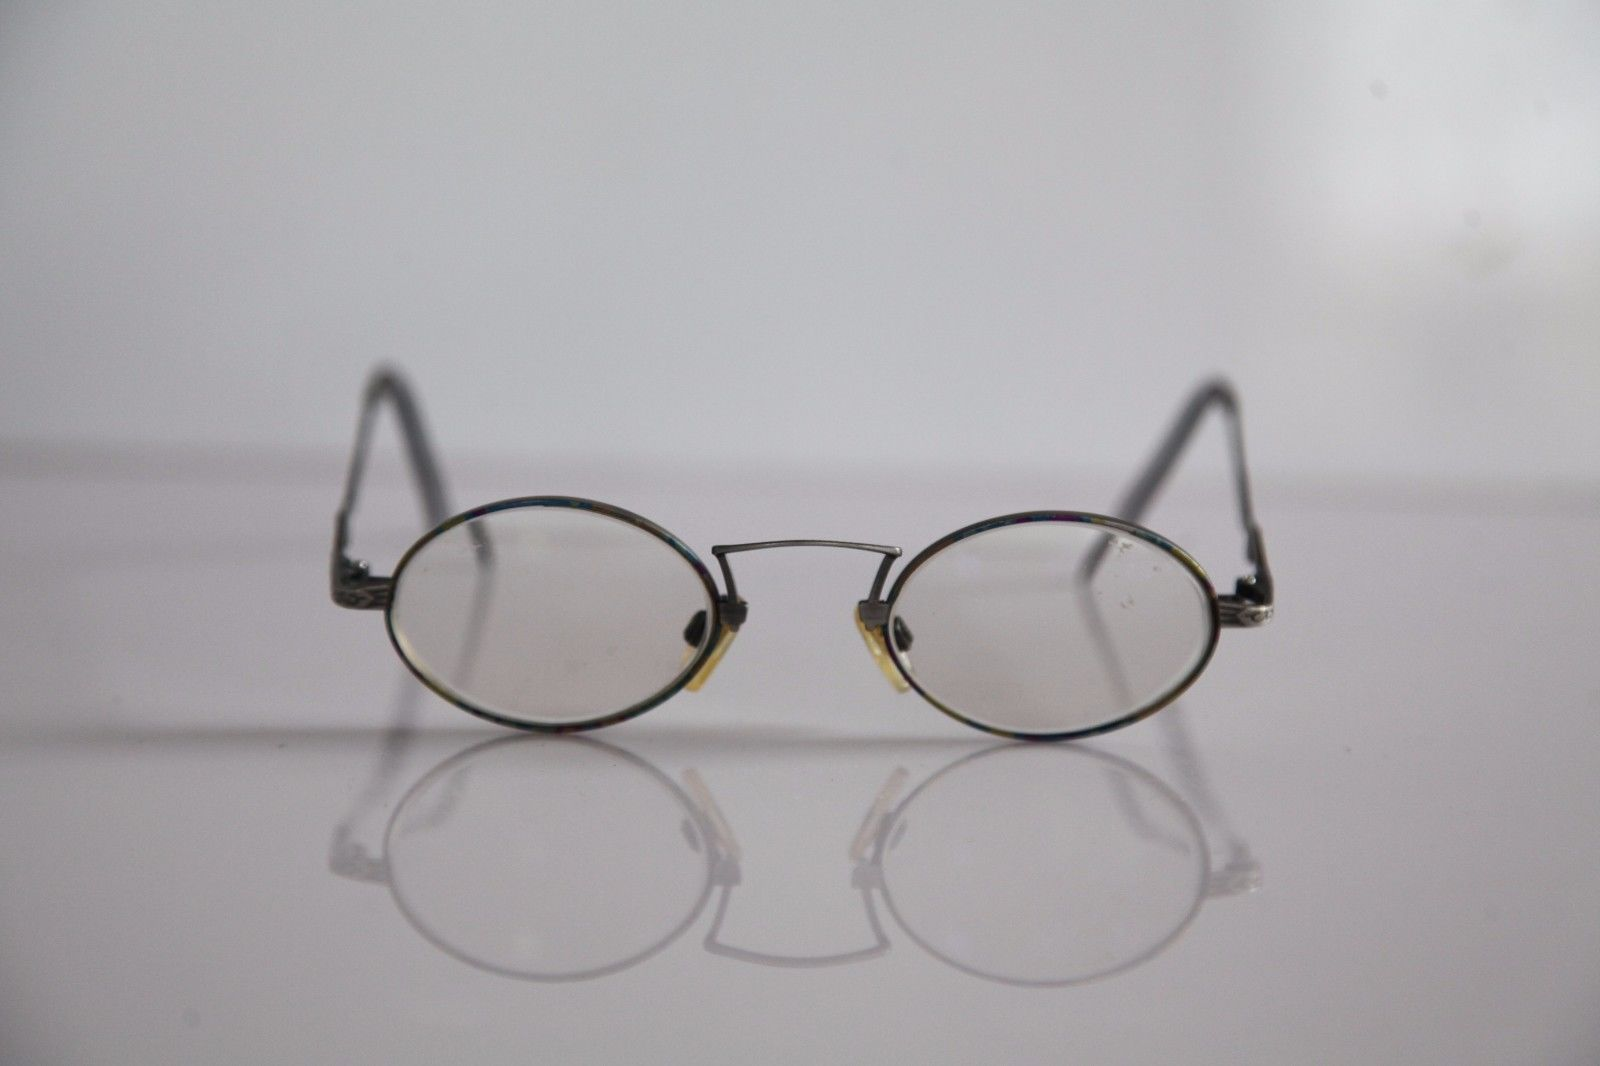 CLAUDIO P. Eyewear, Silver Frame, RX-Able Prescription lenses. Made in Italy image 3